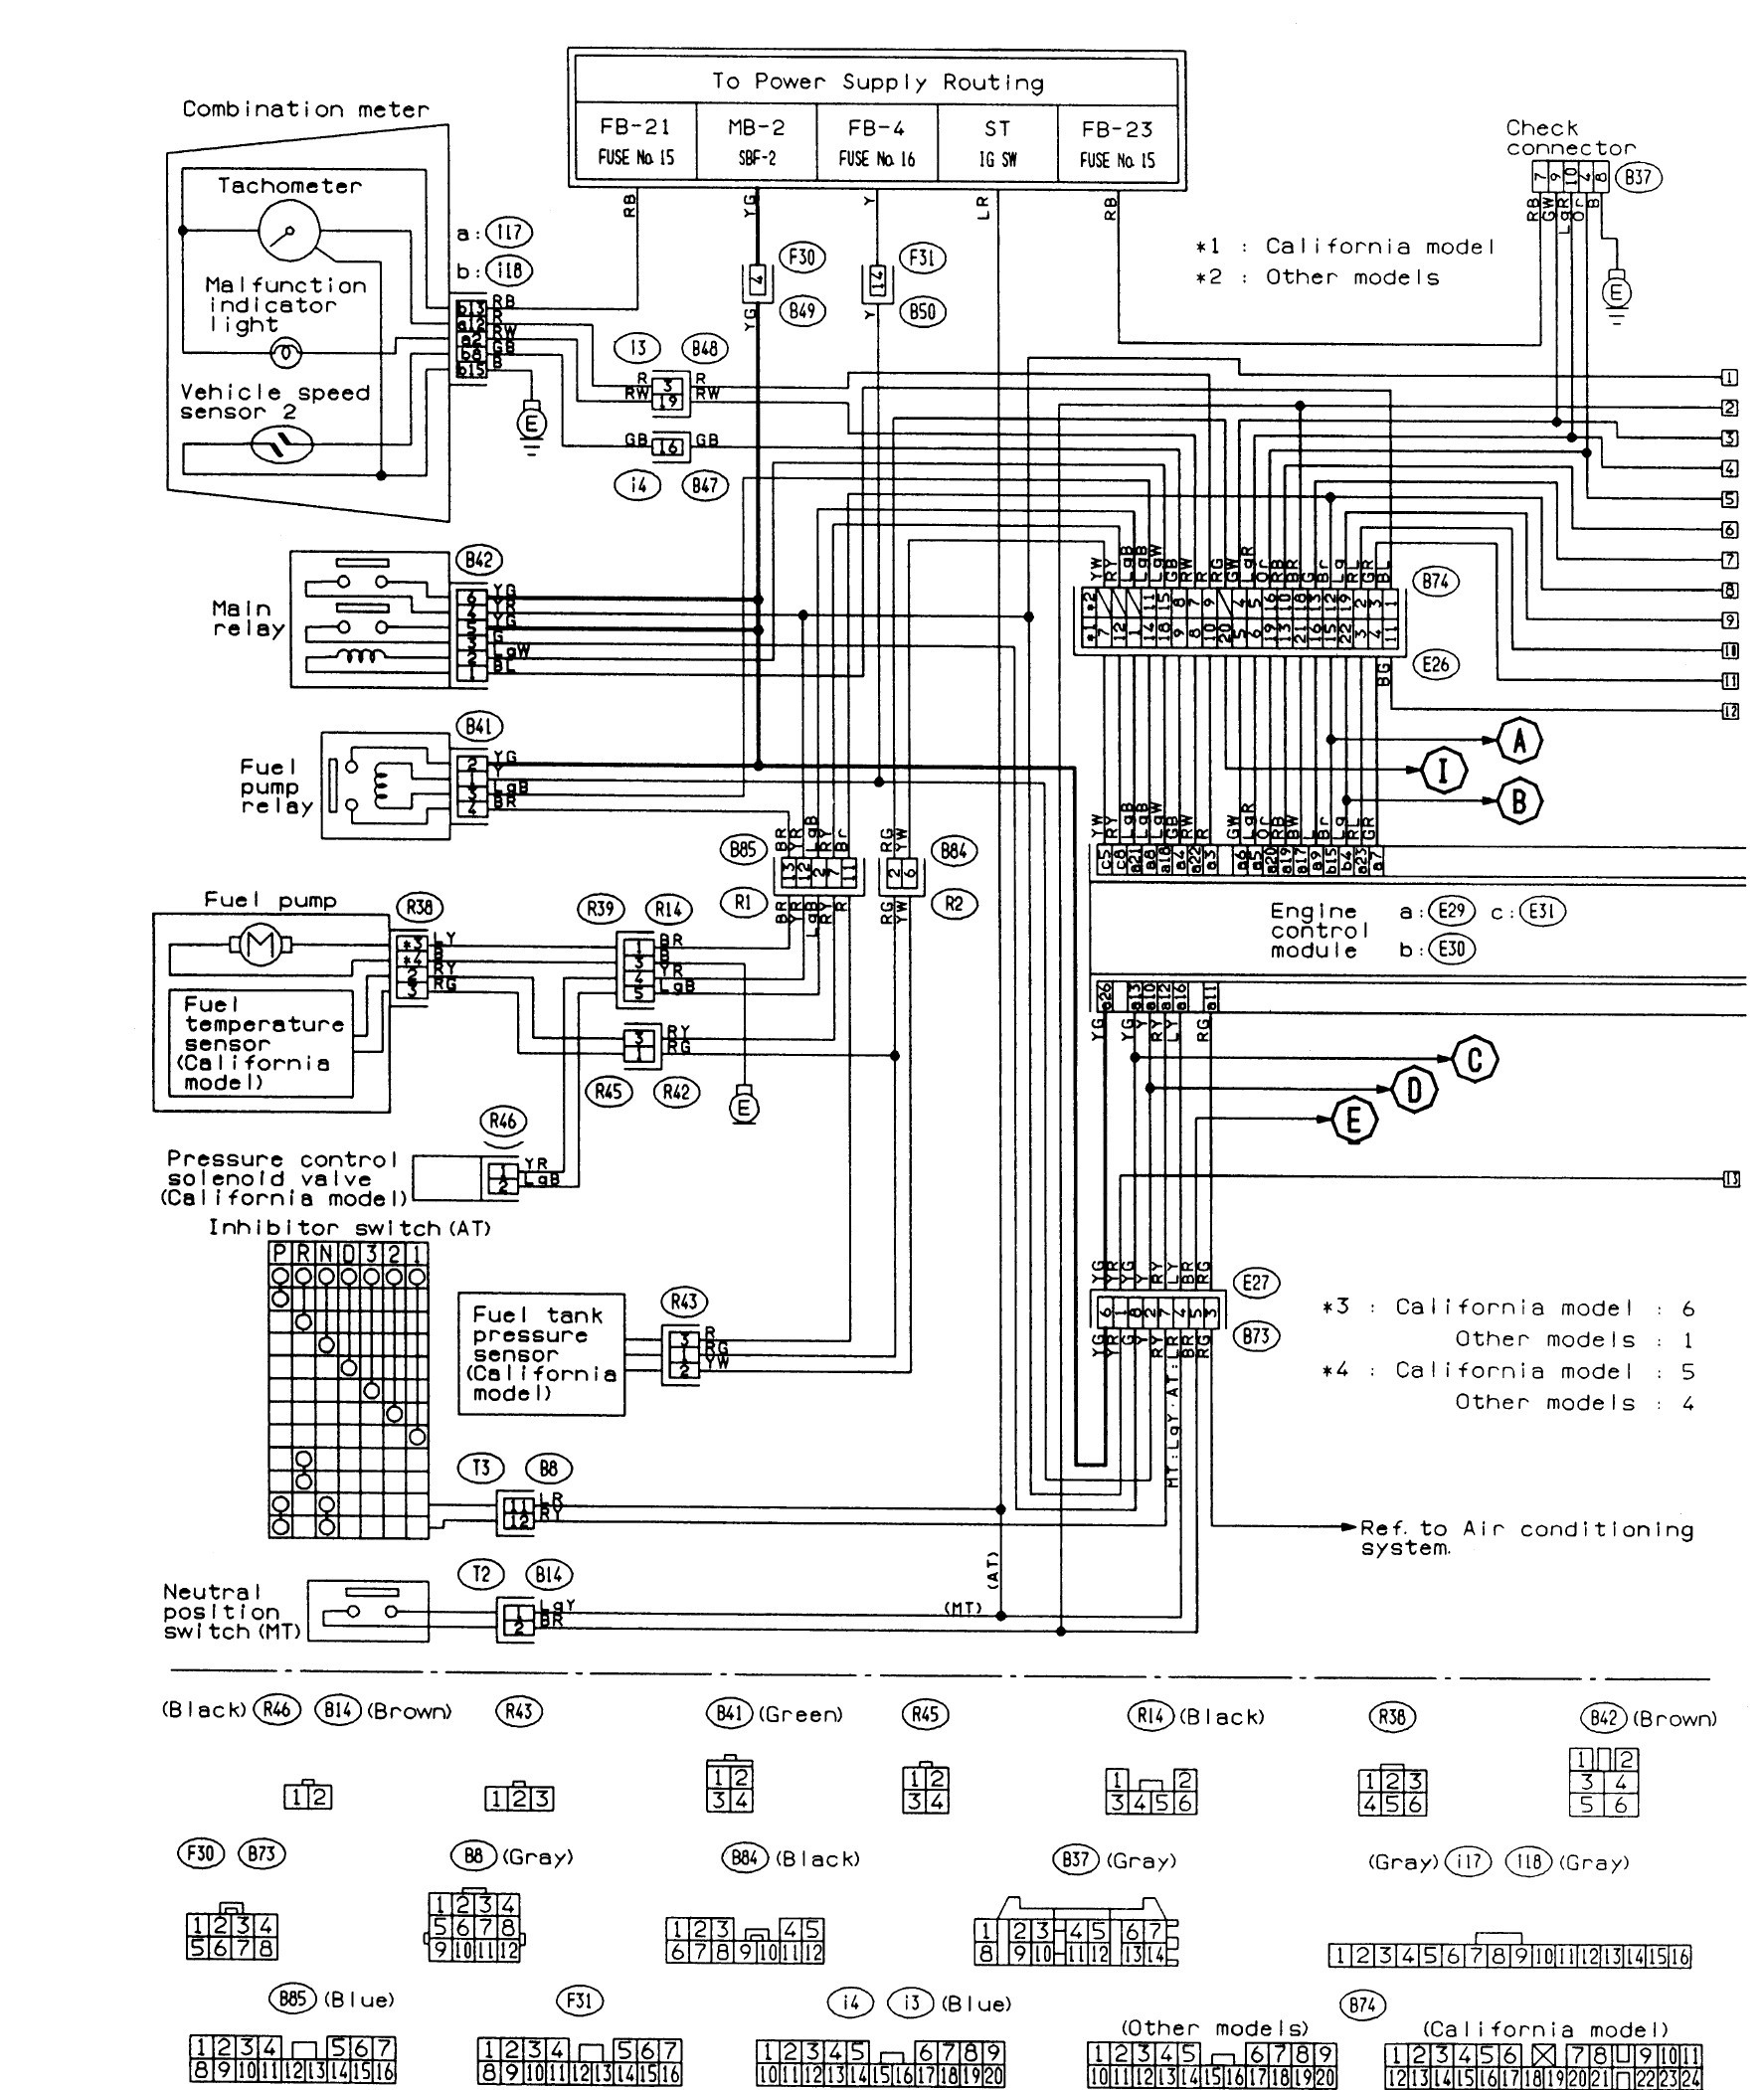 2015 Wrx Engine Diagram Cool Review About 2002 Wrx Engine with Breathtaking Of 2015 Wrx Engine Diagram 2015 Honda Accord Stereo Wiring Diagram Reference 2015 Wrx Stereo